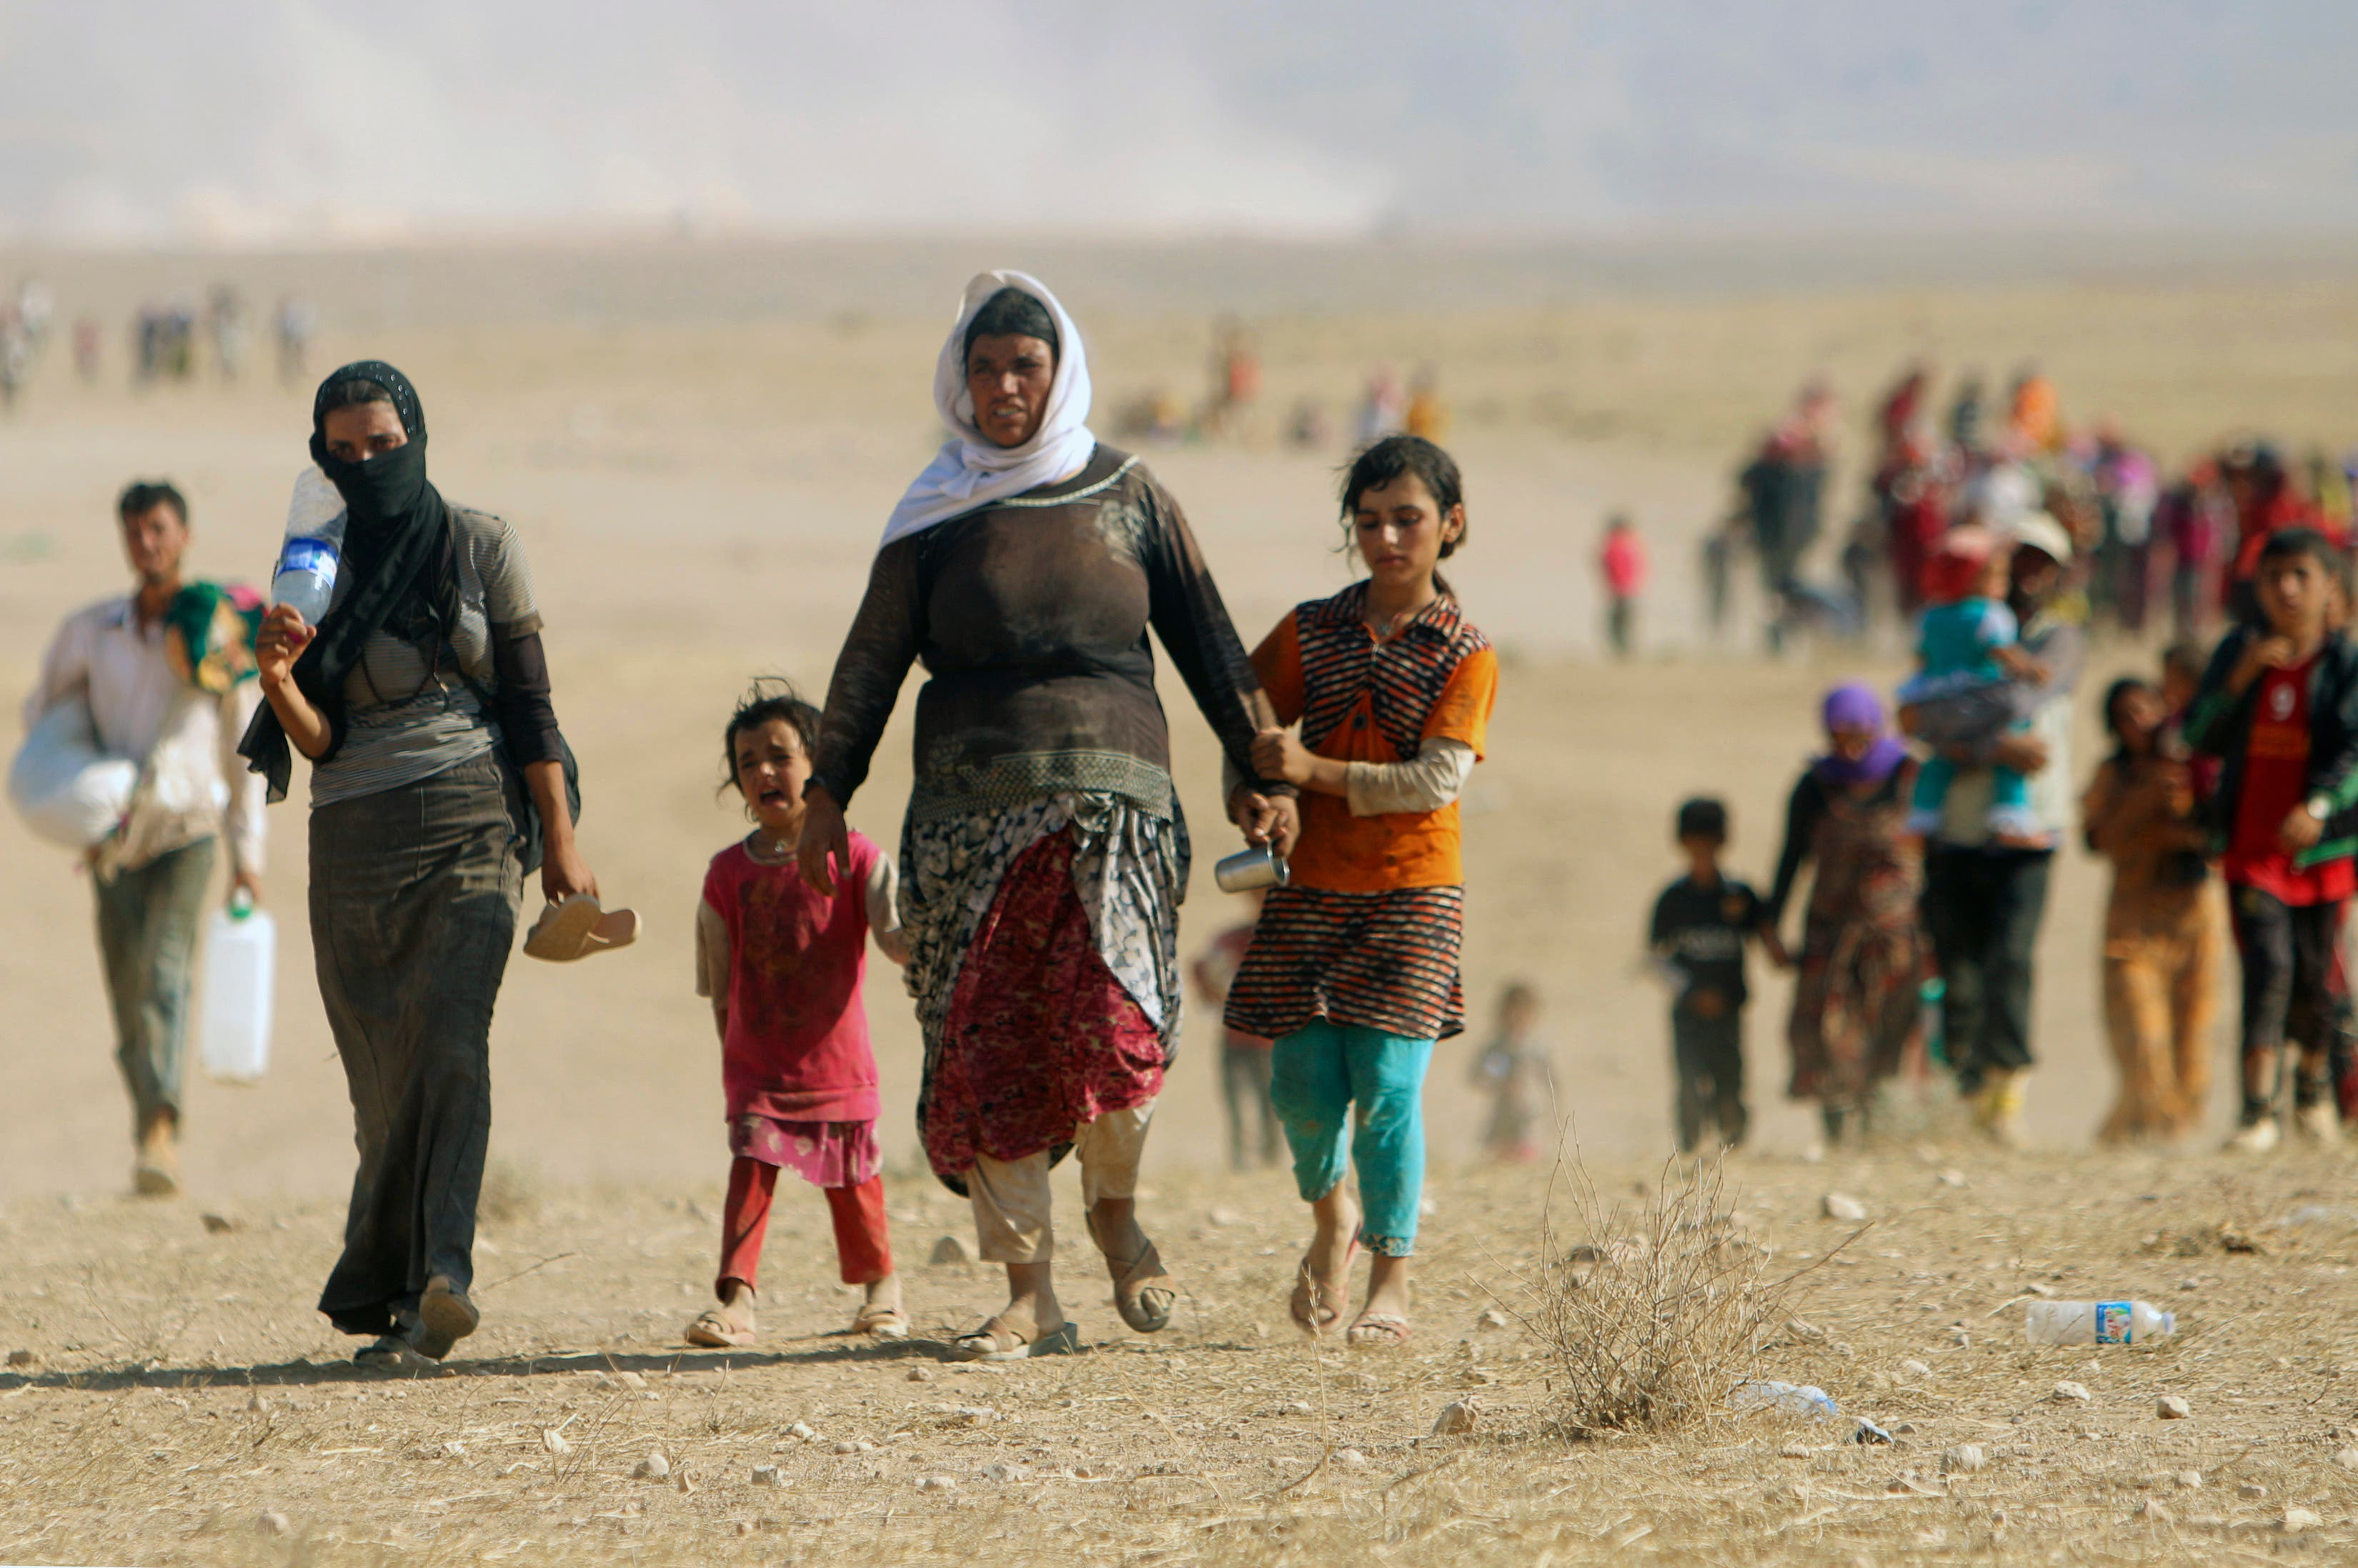 Displaced people from the minority Yazidi sect, fleeing violence from forces loyal to ISIS in Sinjar town, walk towards the Syrian border, on the outskirts of Sinjar mountain, near the Syrian border. (File photo: Reuters)